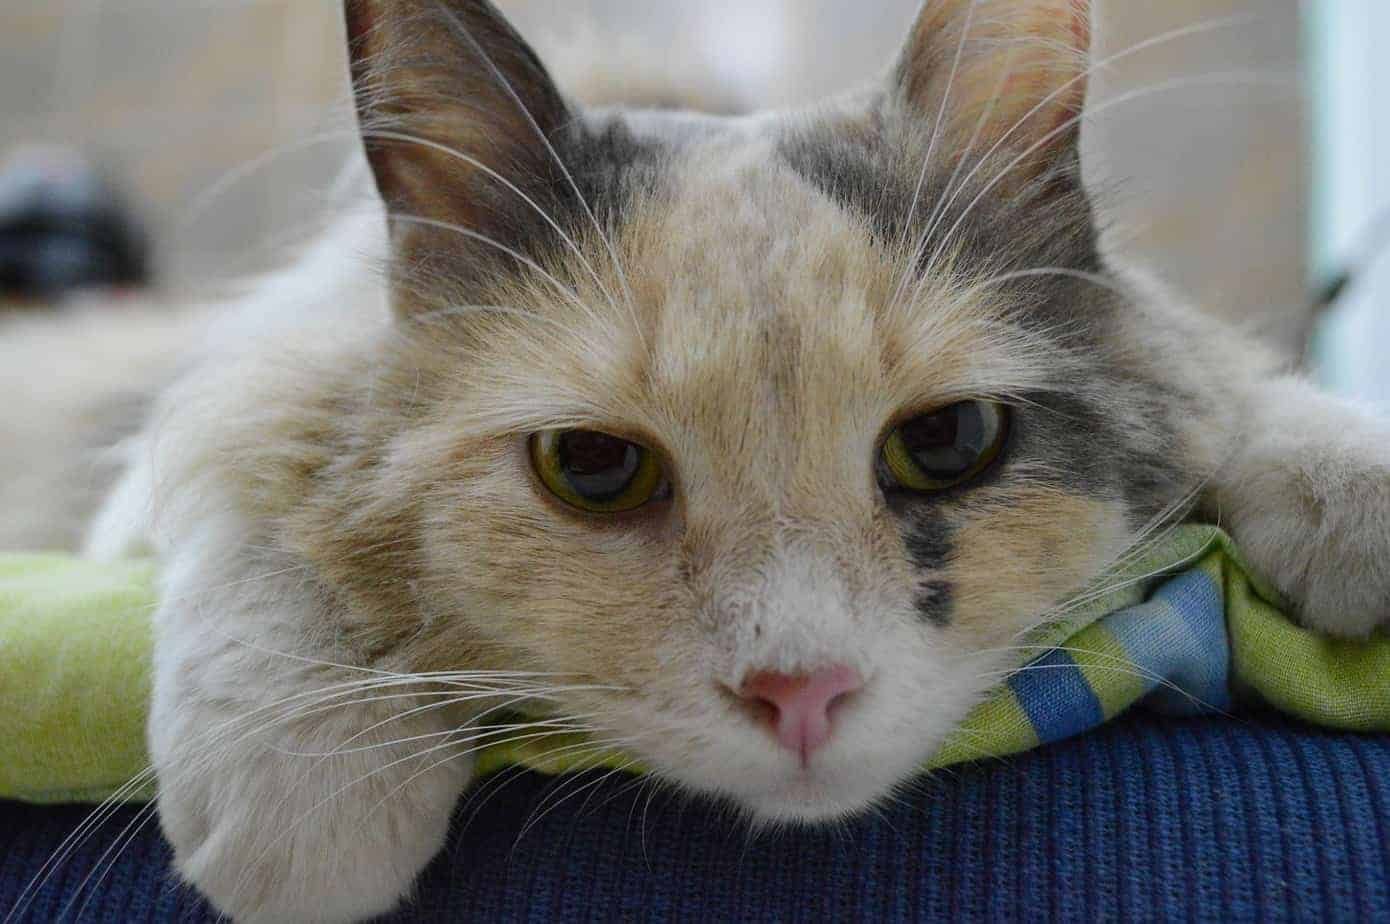 Chronic renal insufficiency – one of the deadliest diseases in cats.